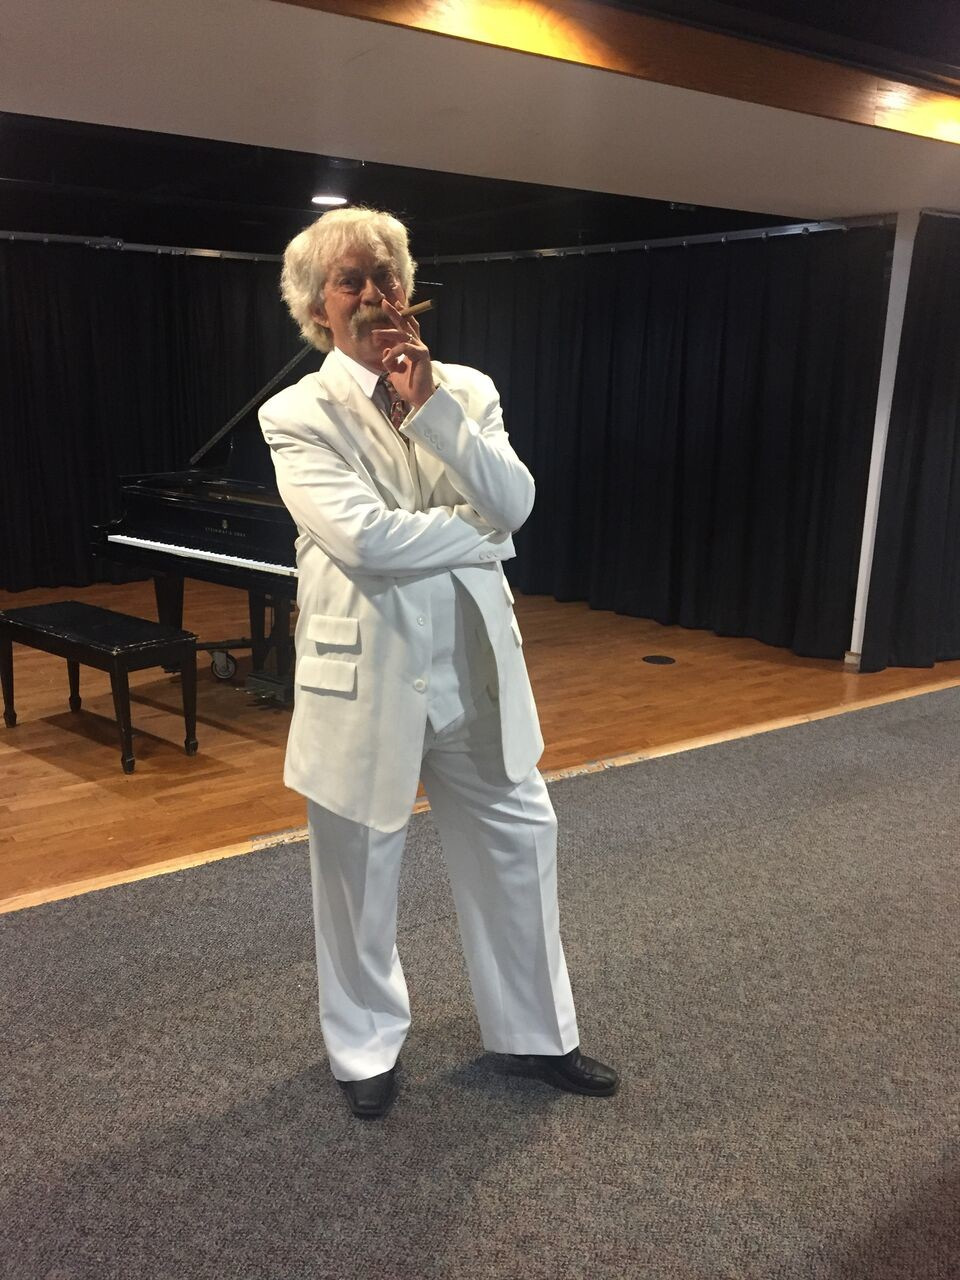 Rob Alvey brings Samuel Clemens (aka Mark Twain) to life in his act.